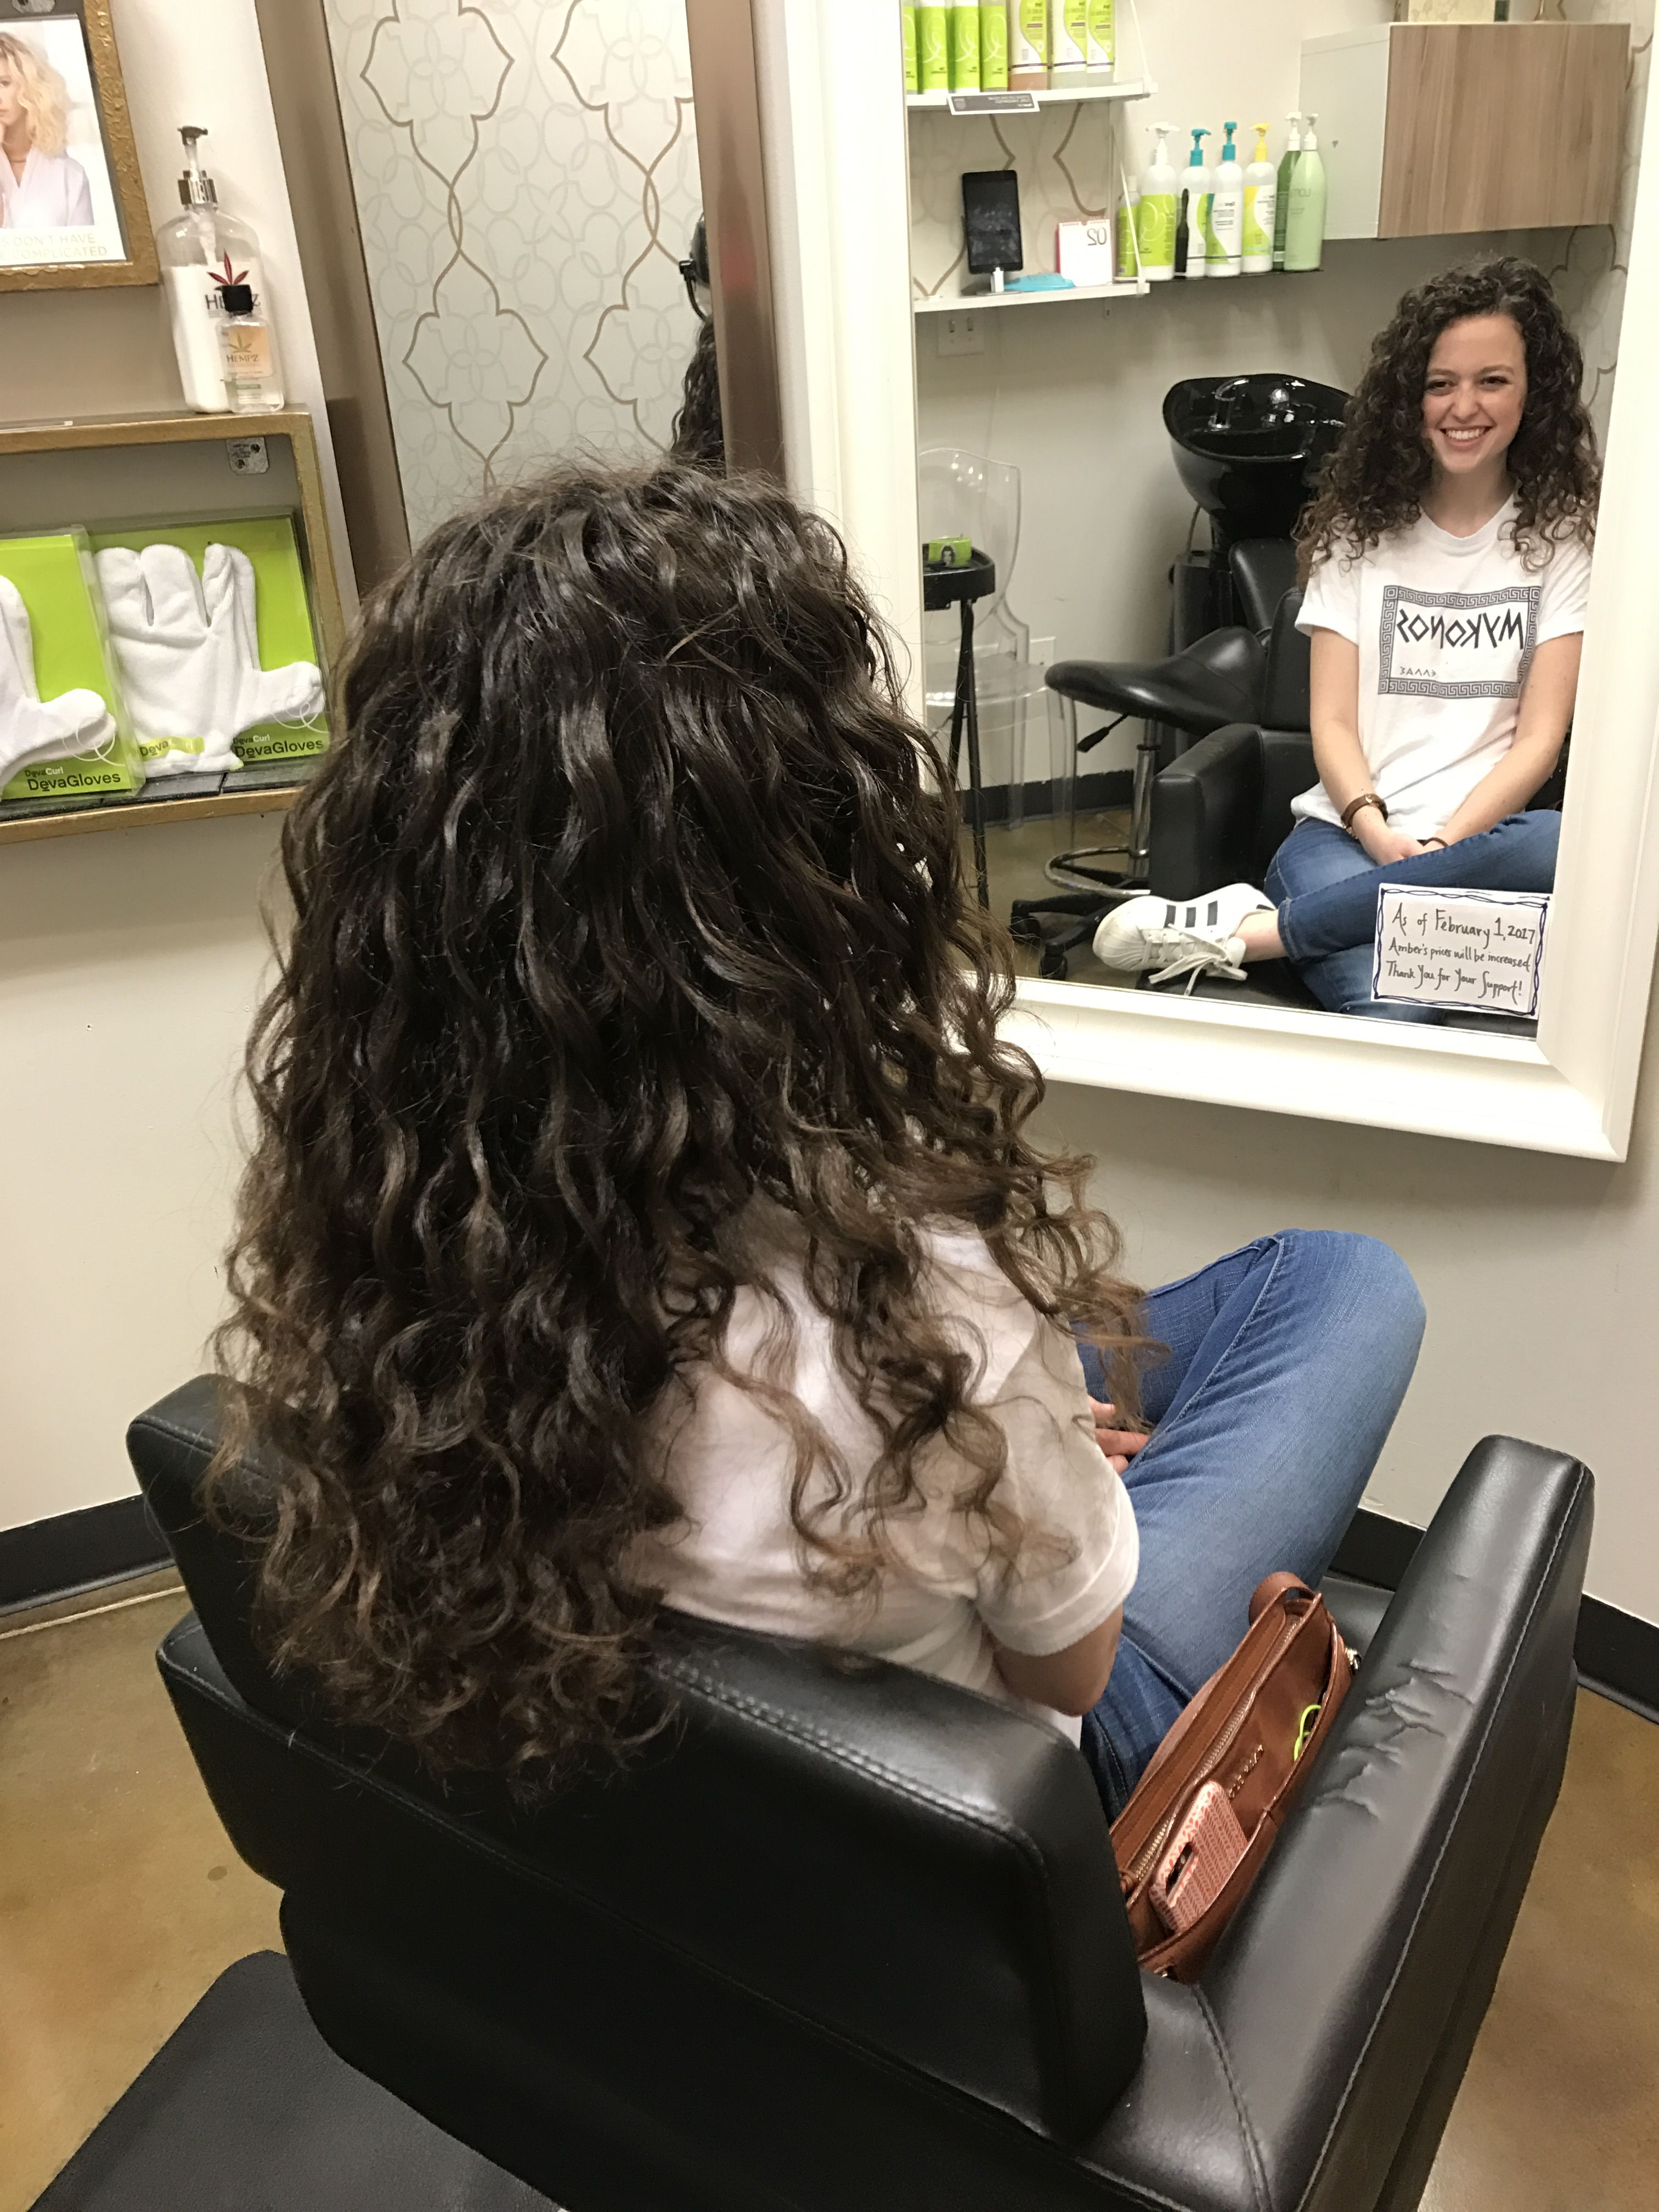 Pin By Pvy On Hair Salon Permed Hairstyles Loose Curls